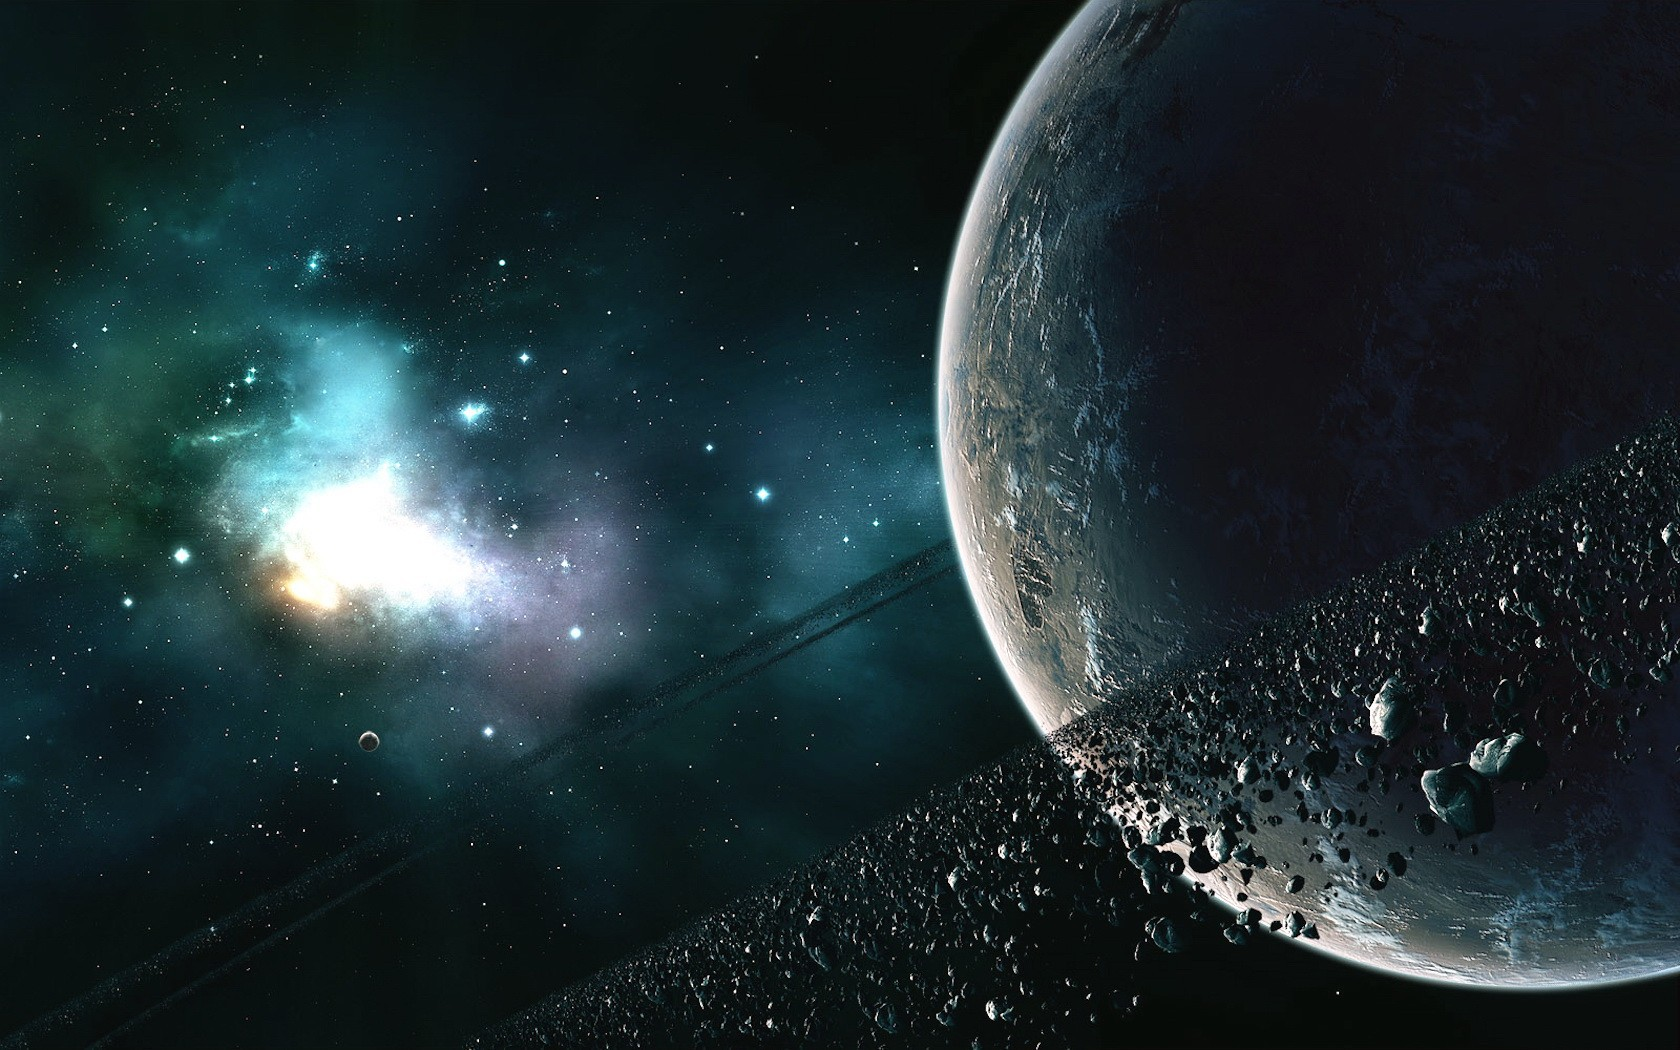 Real Asteroid Belt HD Wallpaper, Backgrounds Image